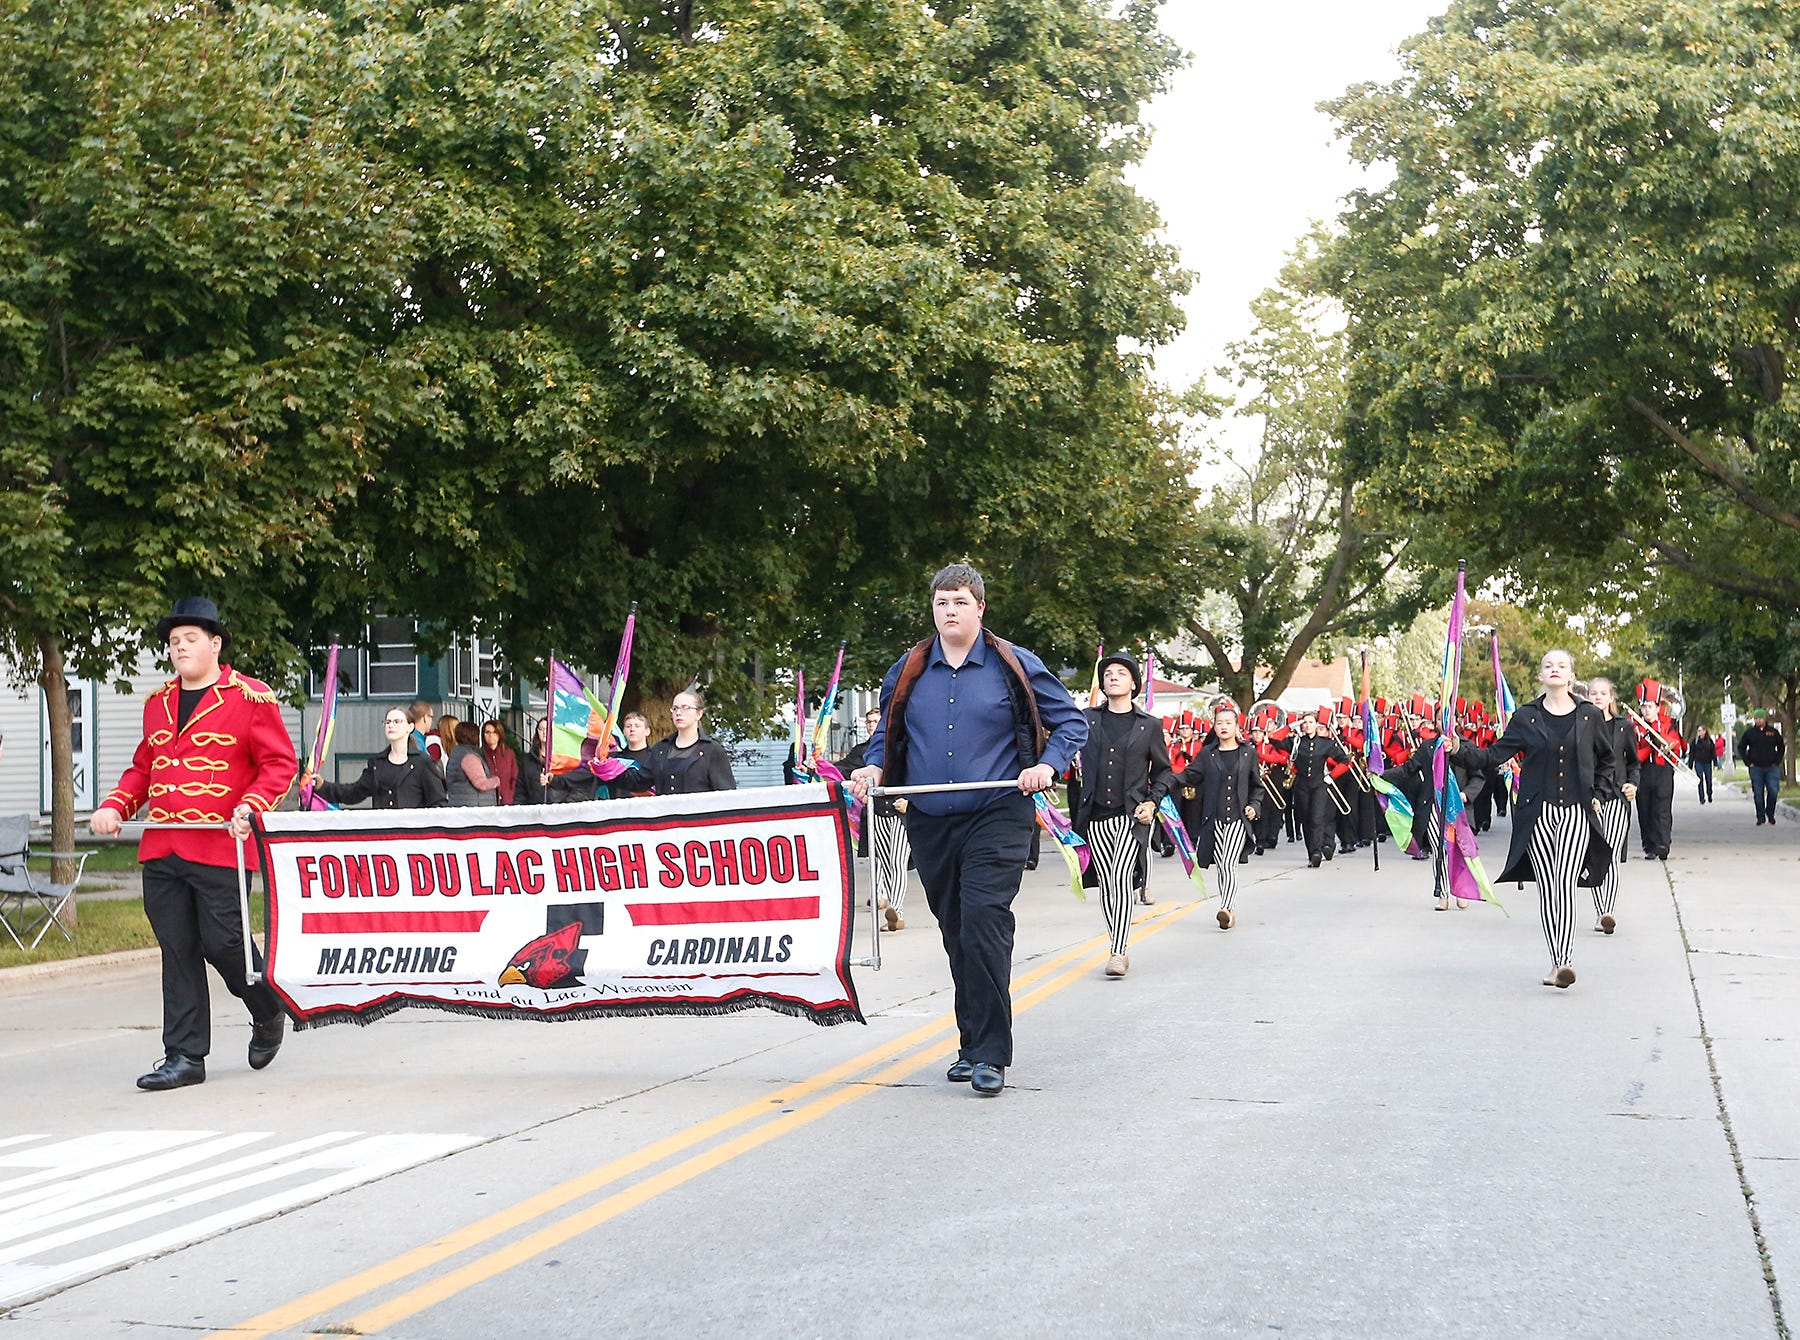 Fond du Lac High School held its football homecoming parade Friday, Sept. 28, 2018, which went down portions of Martin Avenue and Ninth Street in Fond du Lac, Wisconsin.